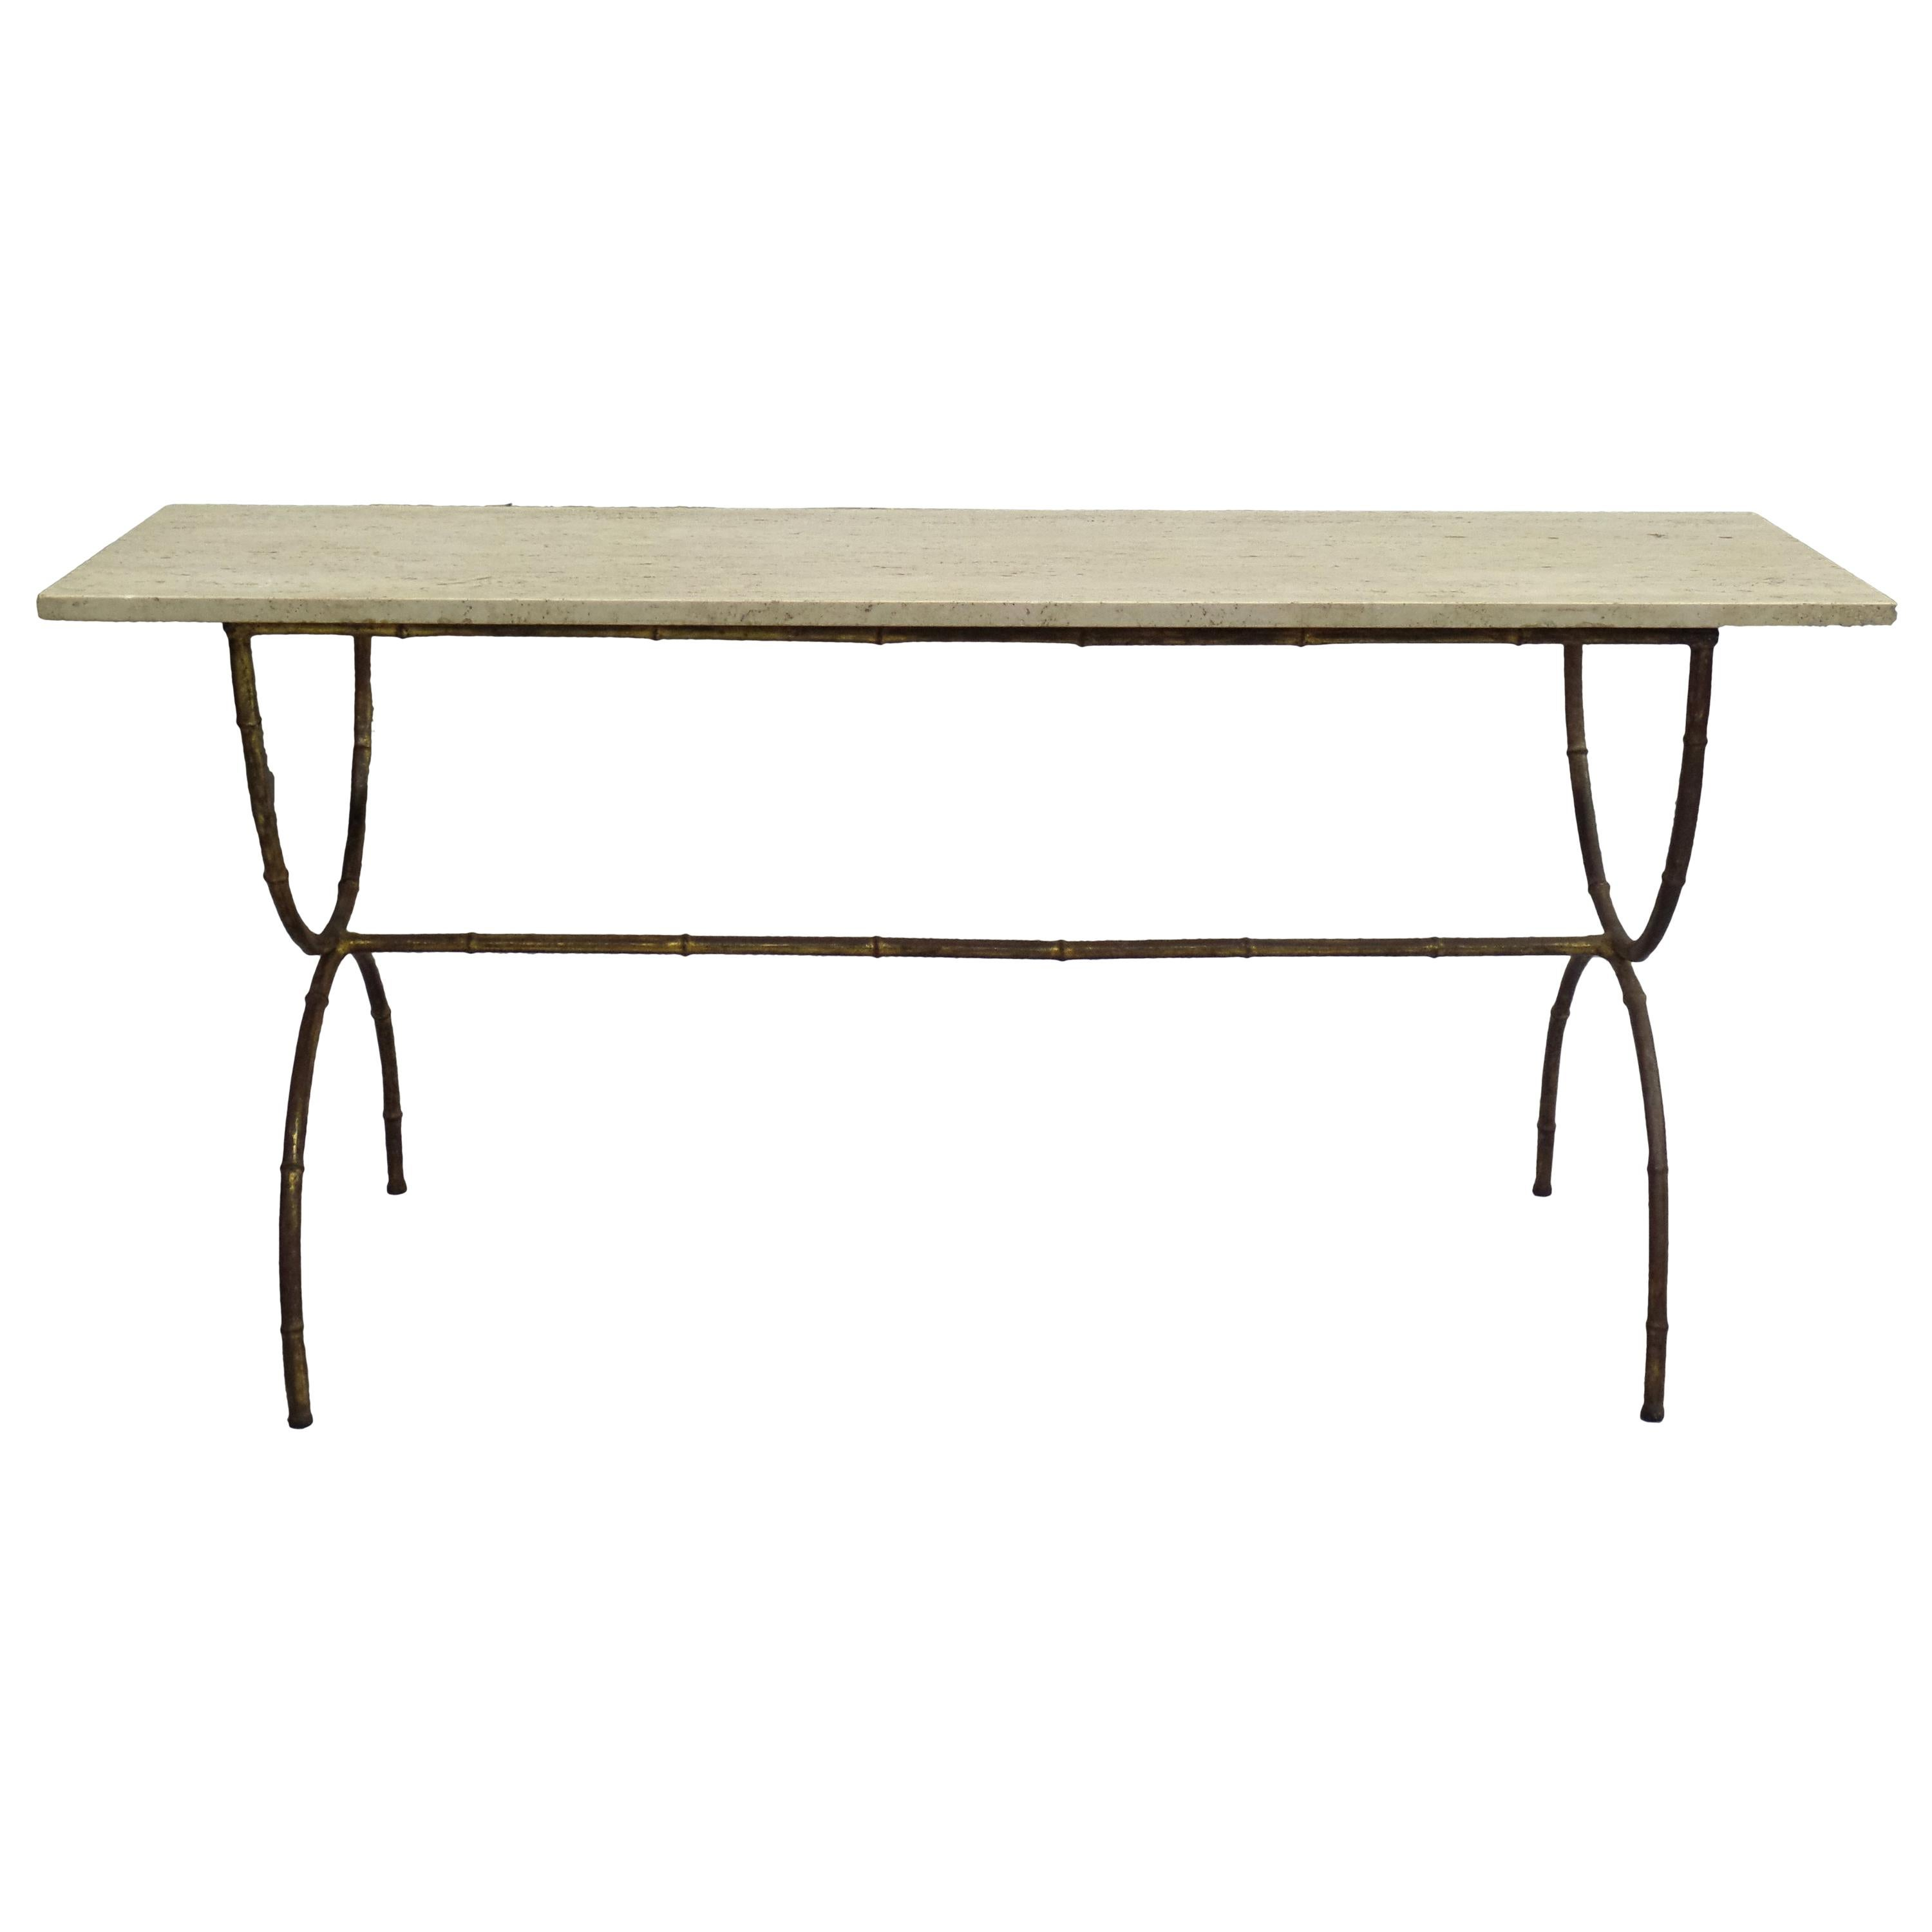 French Modern Neoclassical Gilt Iron Faux Bamboo Sofa Table/Console, Baguès